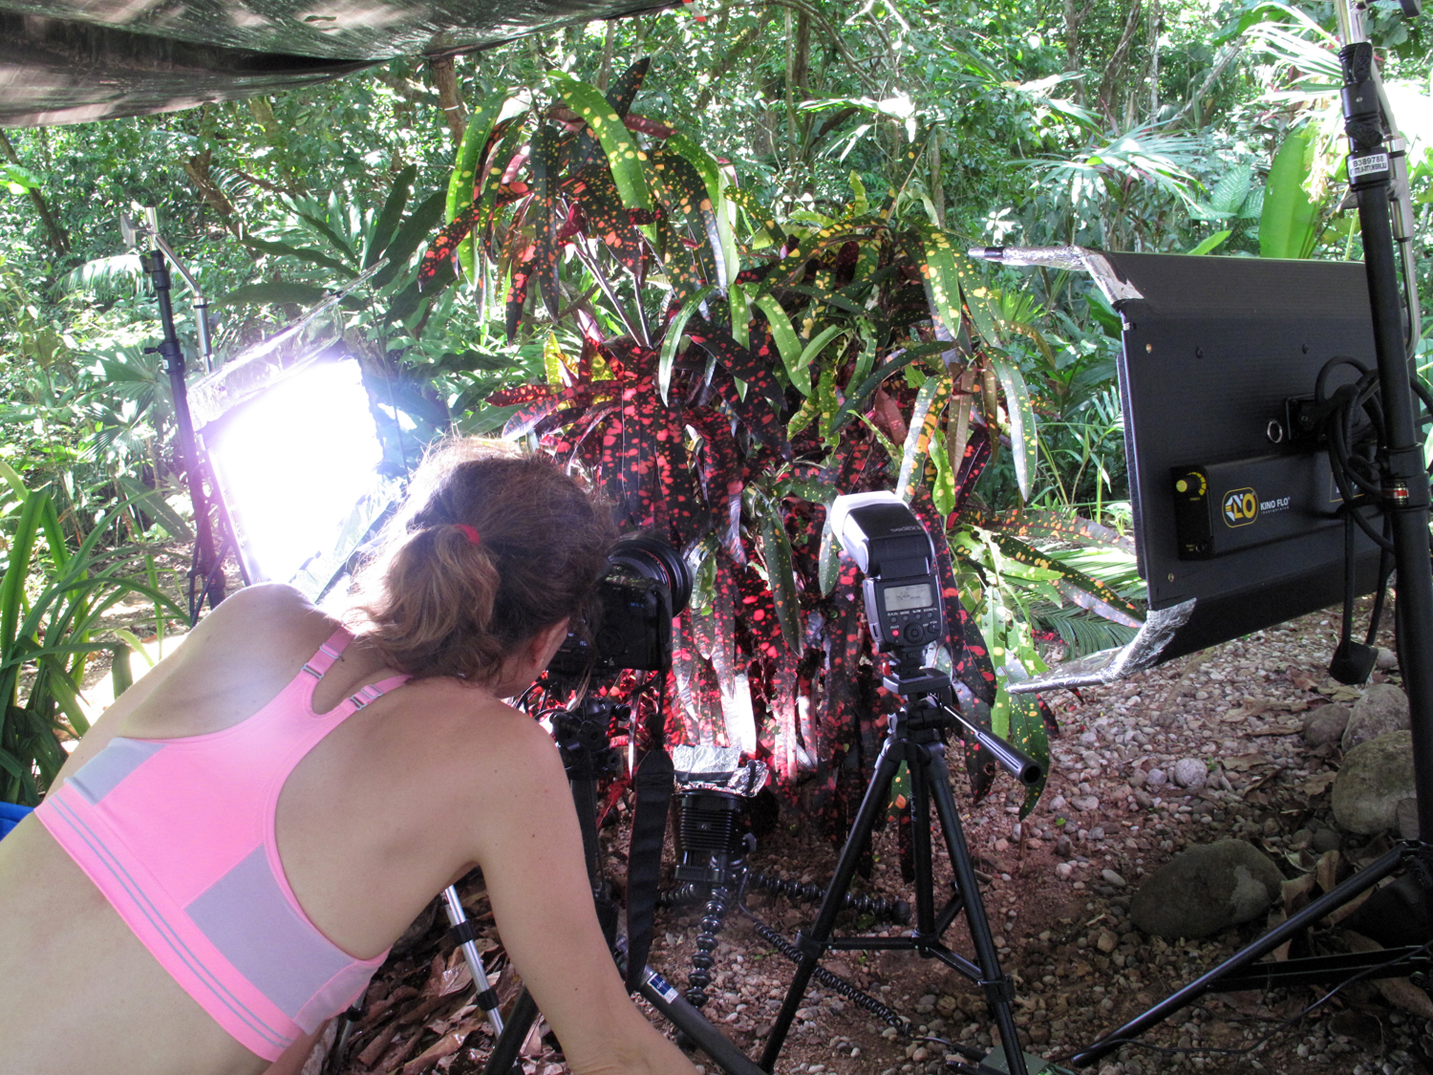 Shooting timelapse sequence in ANTWORKS video, Costa Rica